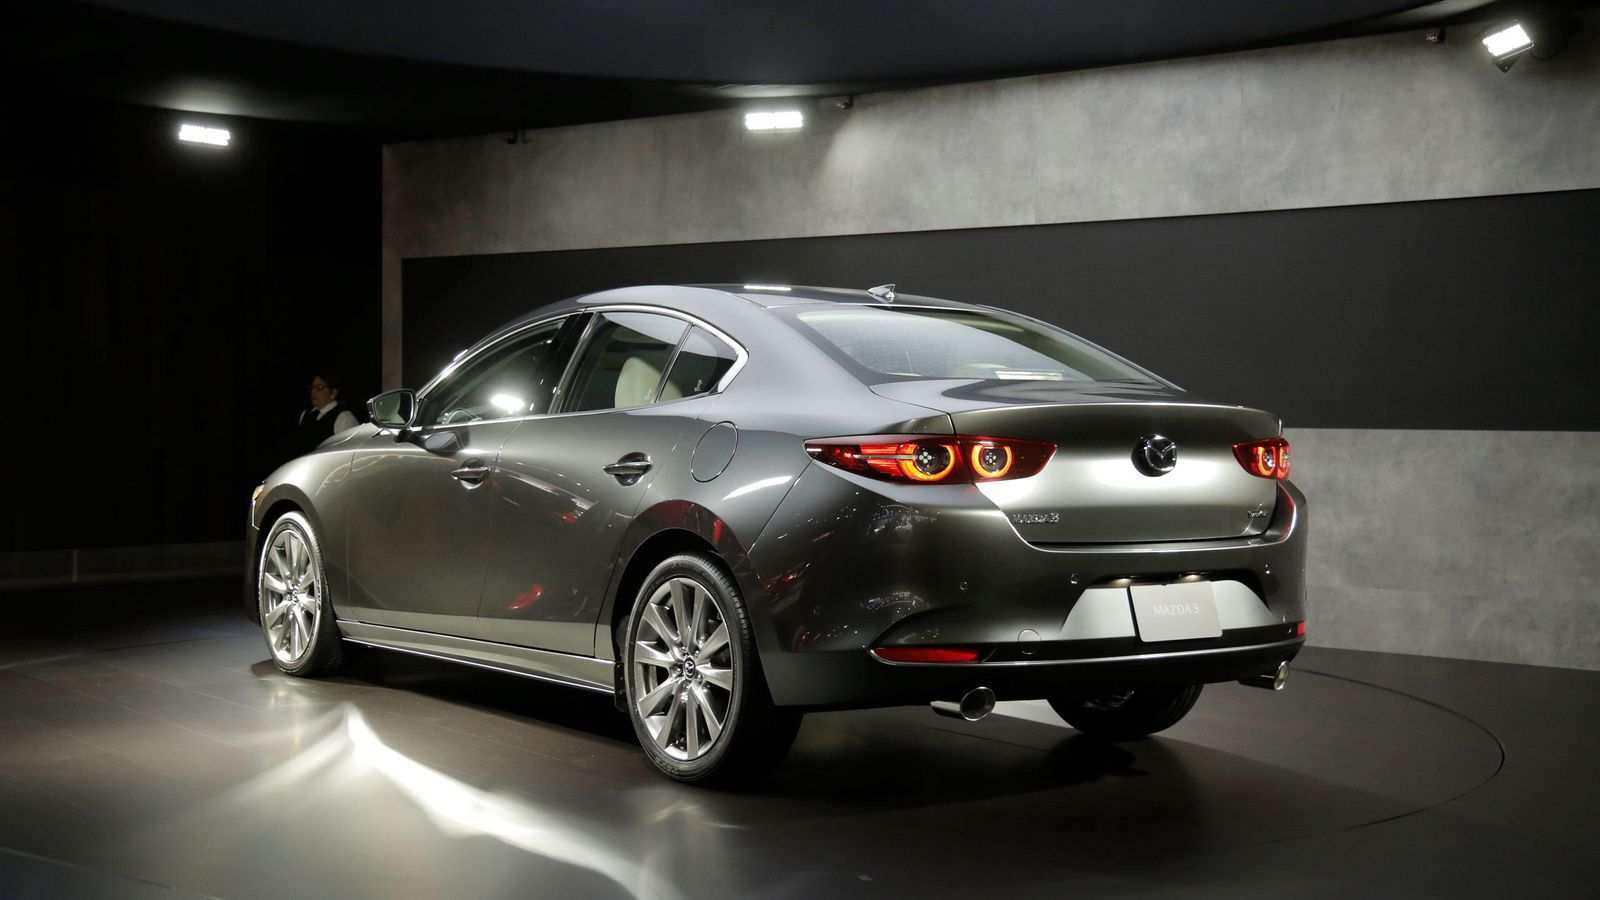 30 New Mazda 2020 Apple Carplay Rumors by Mazda 2020 Apple Carplay